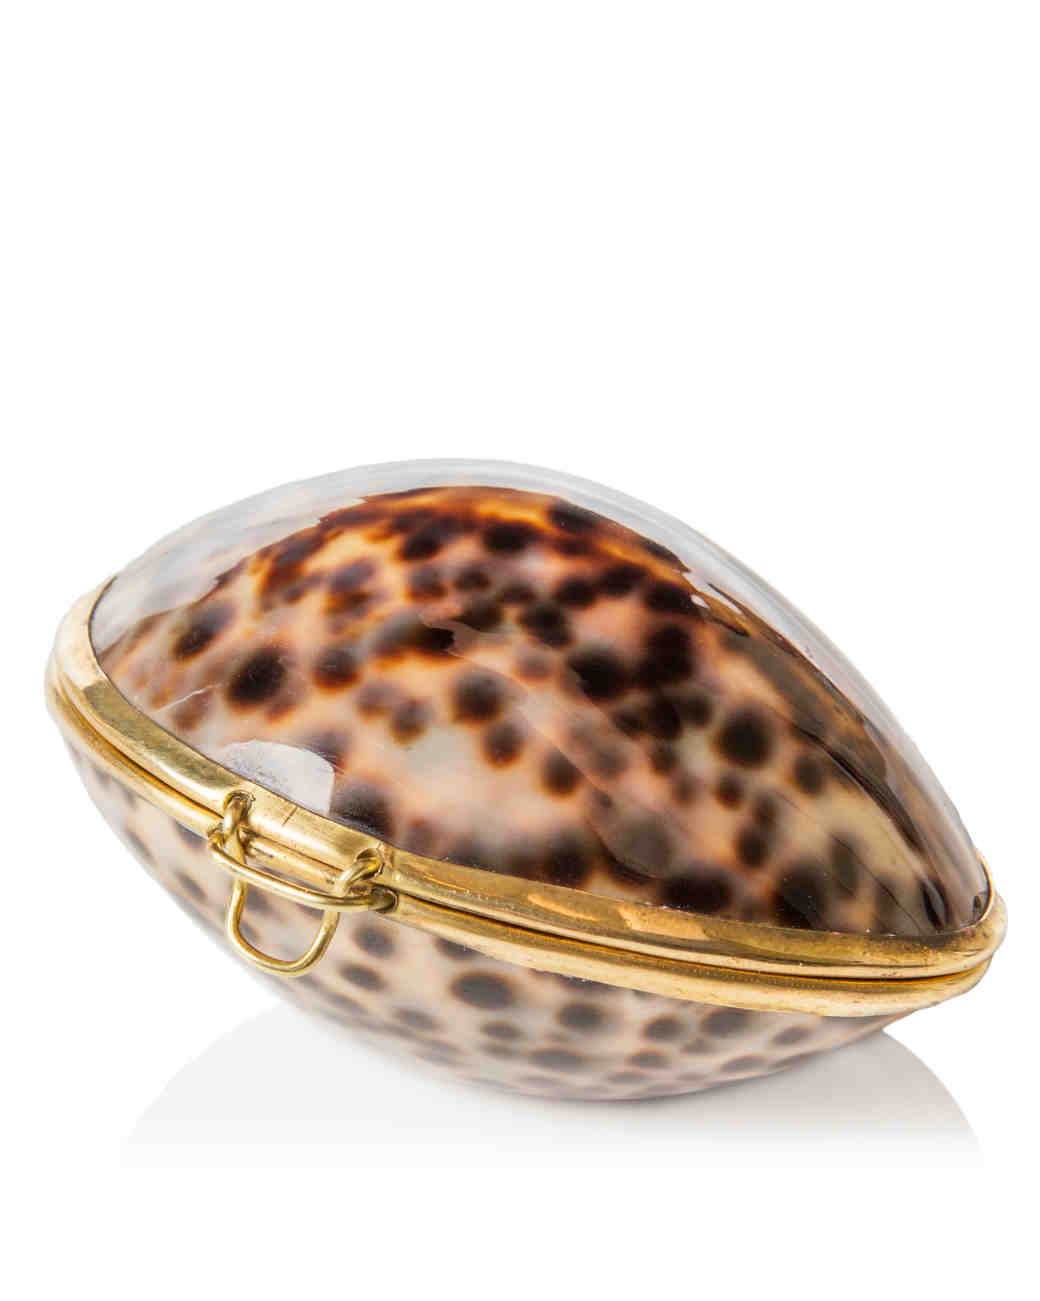 ring-boxes-the-evolution-store-tiger-cowrie-purse-0115.jpg